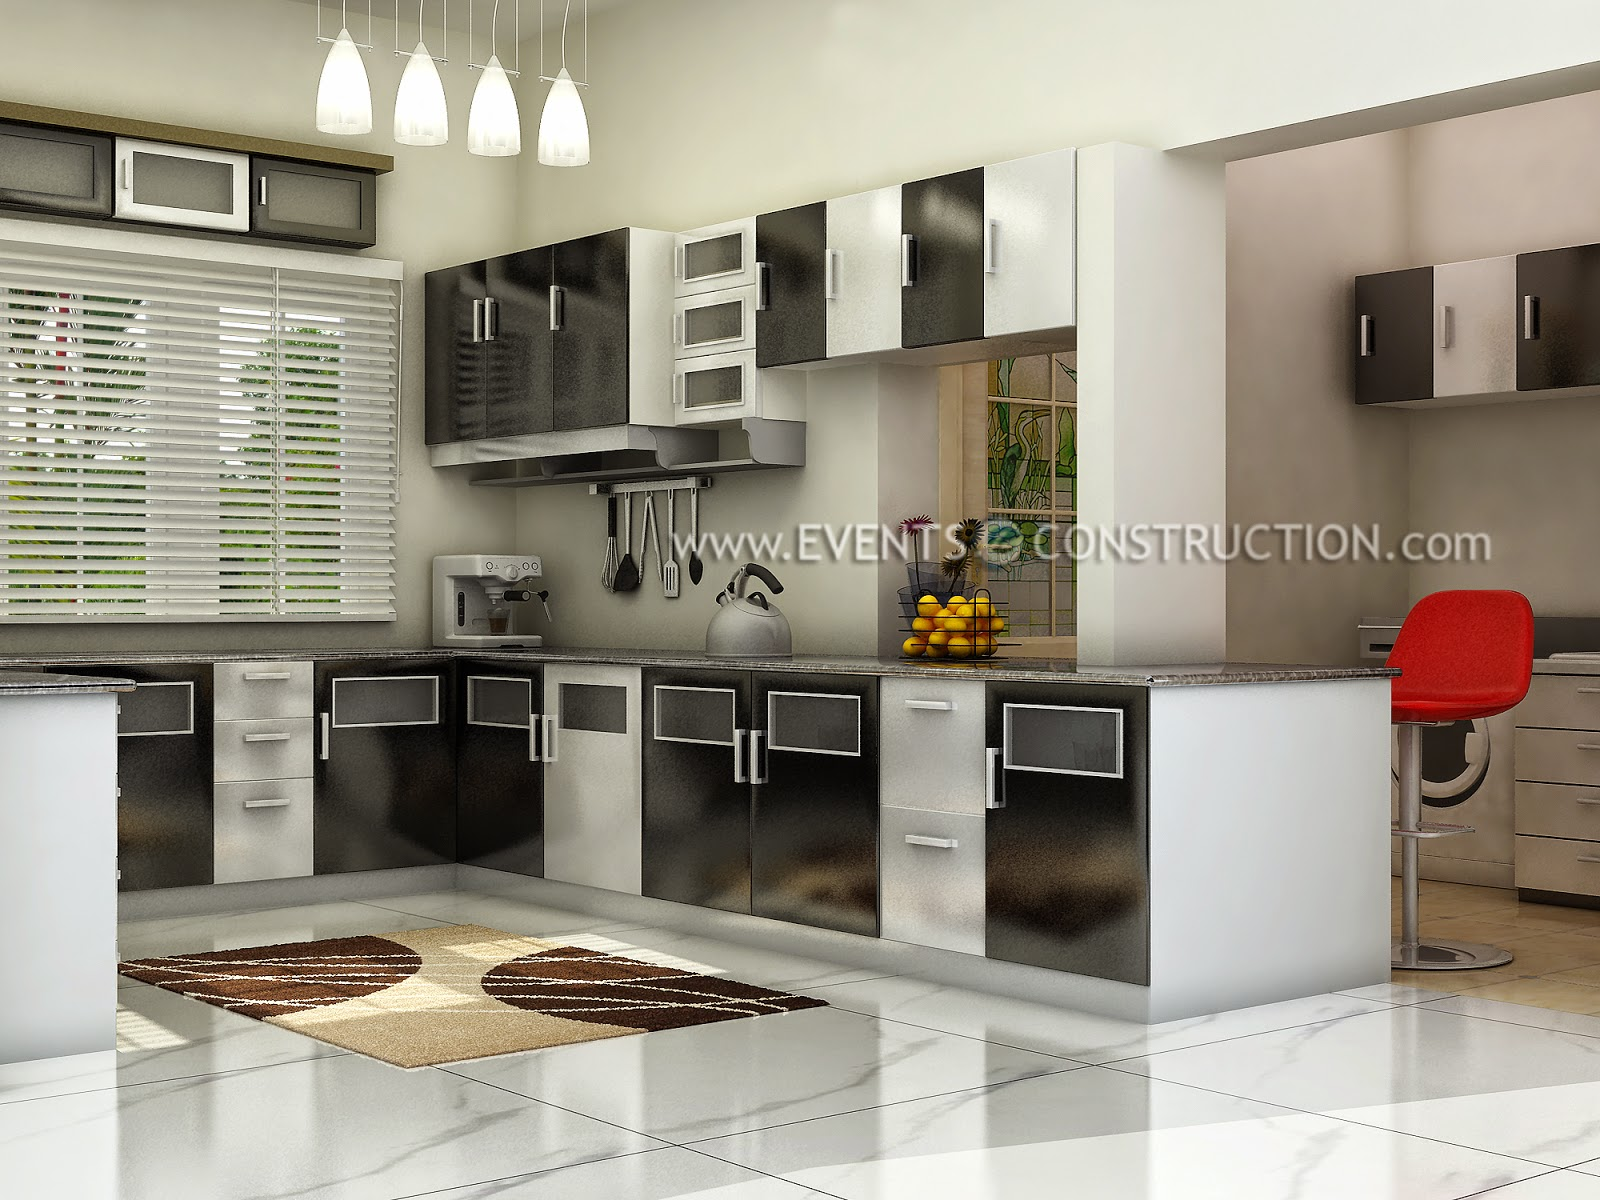 Simple kitchen design kerala style images for Kitchen design kerala